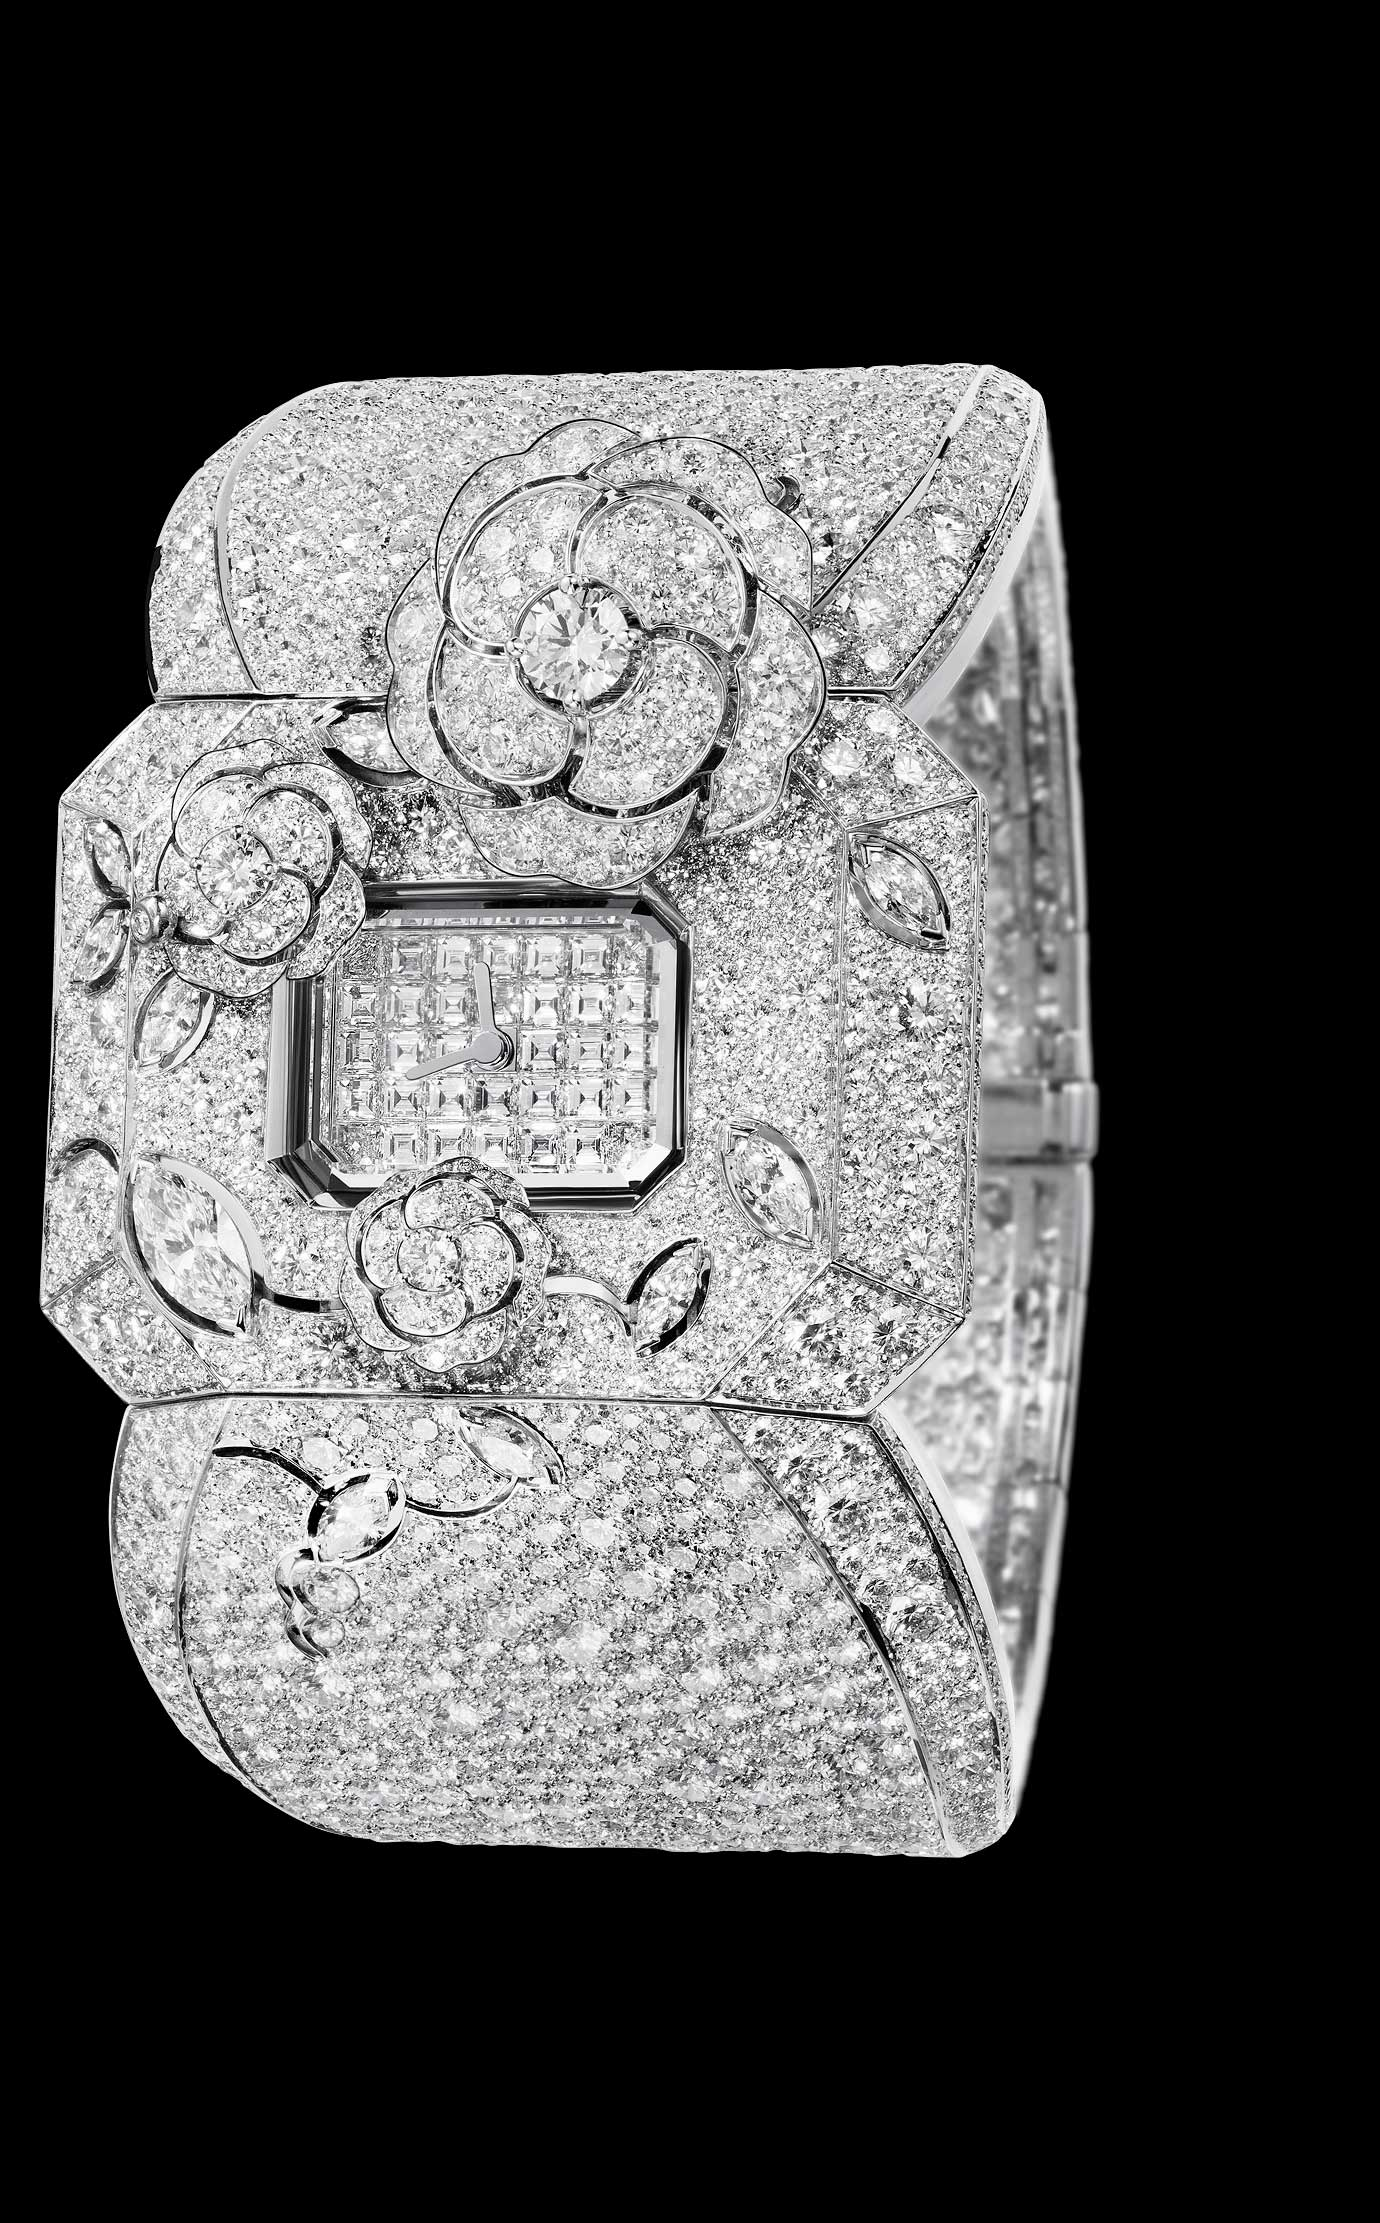 Les Eternelles de CHANEL. Watch in 18K white gold and diamonds. High precision quartz movement. - Open